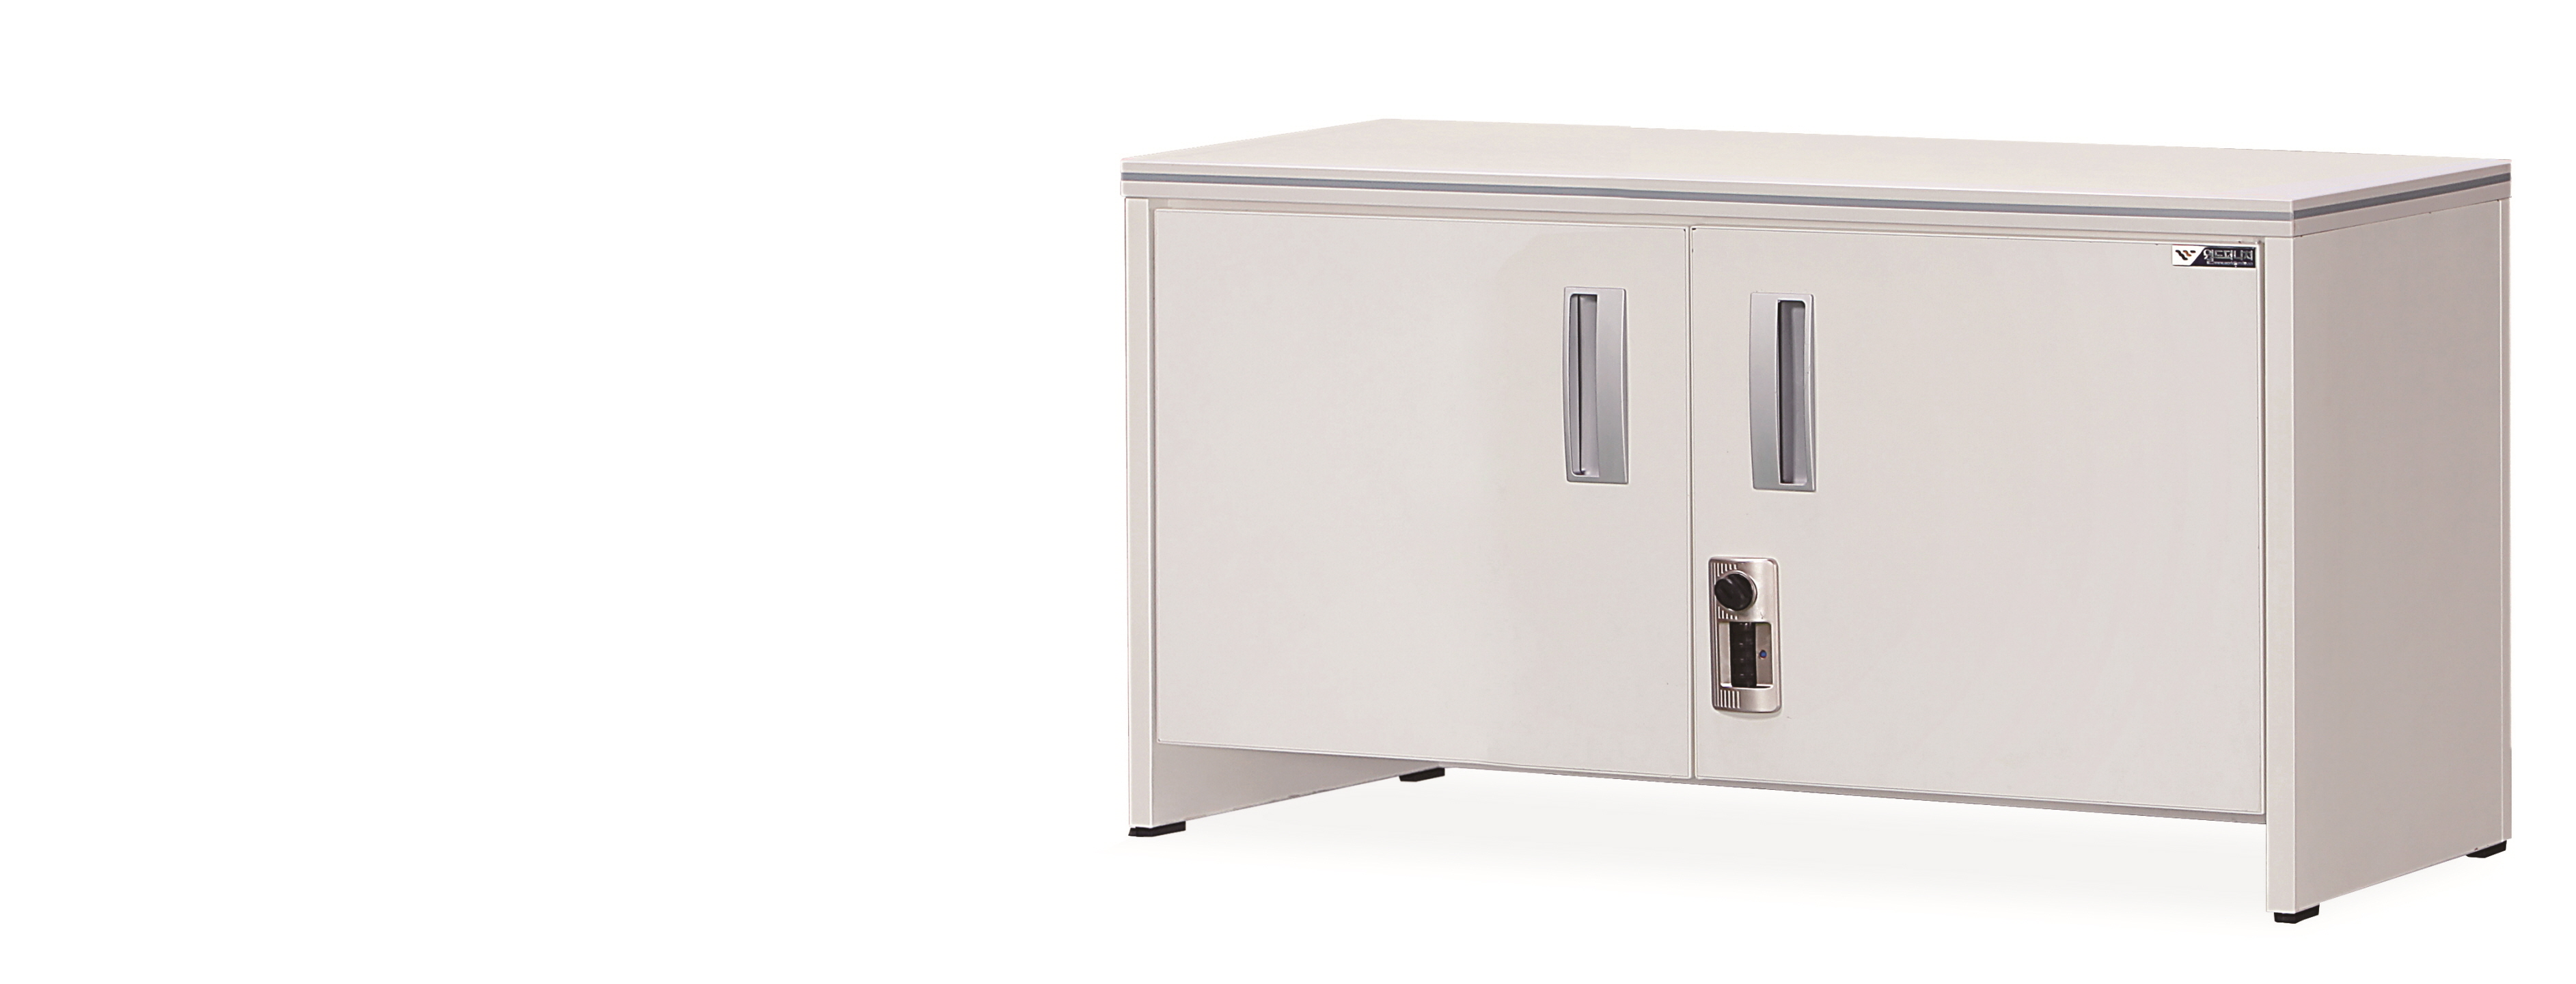 Linea F upperlocker (single door type)([dial key]